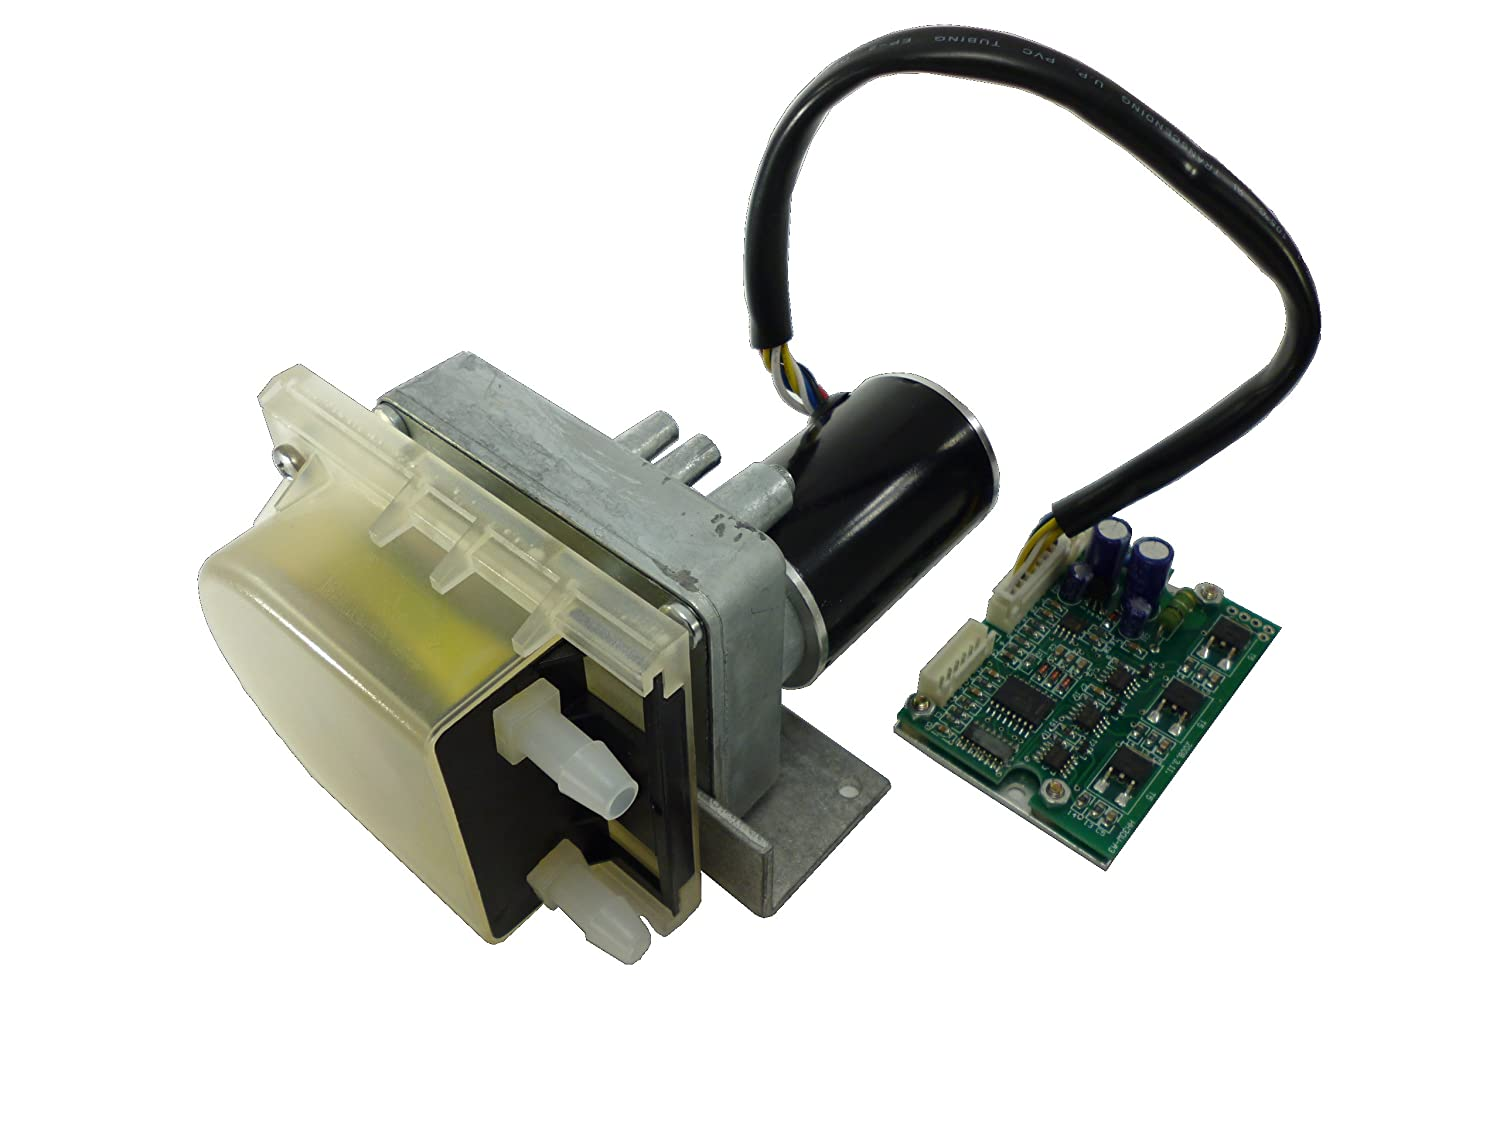 Simply Pumps PMB300F Peristaltic Self wit Max 90% OFF Pump Priming Brushless Wholesale